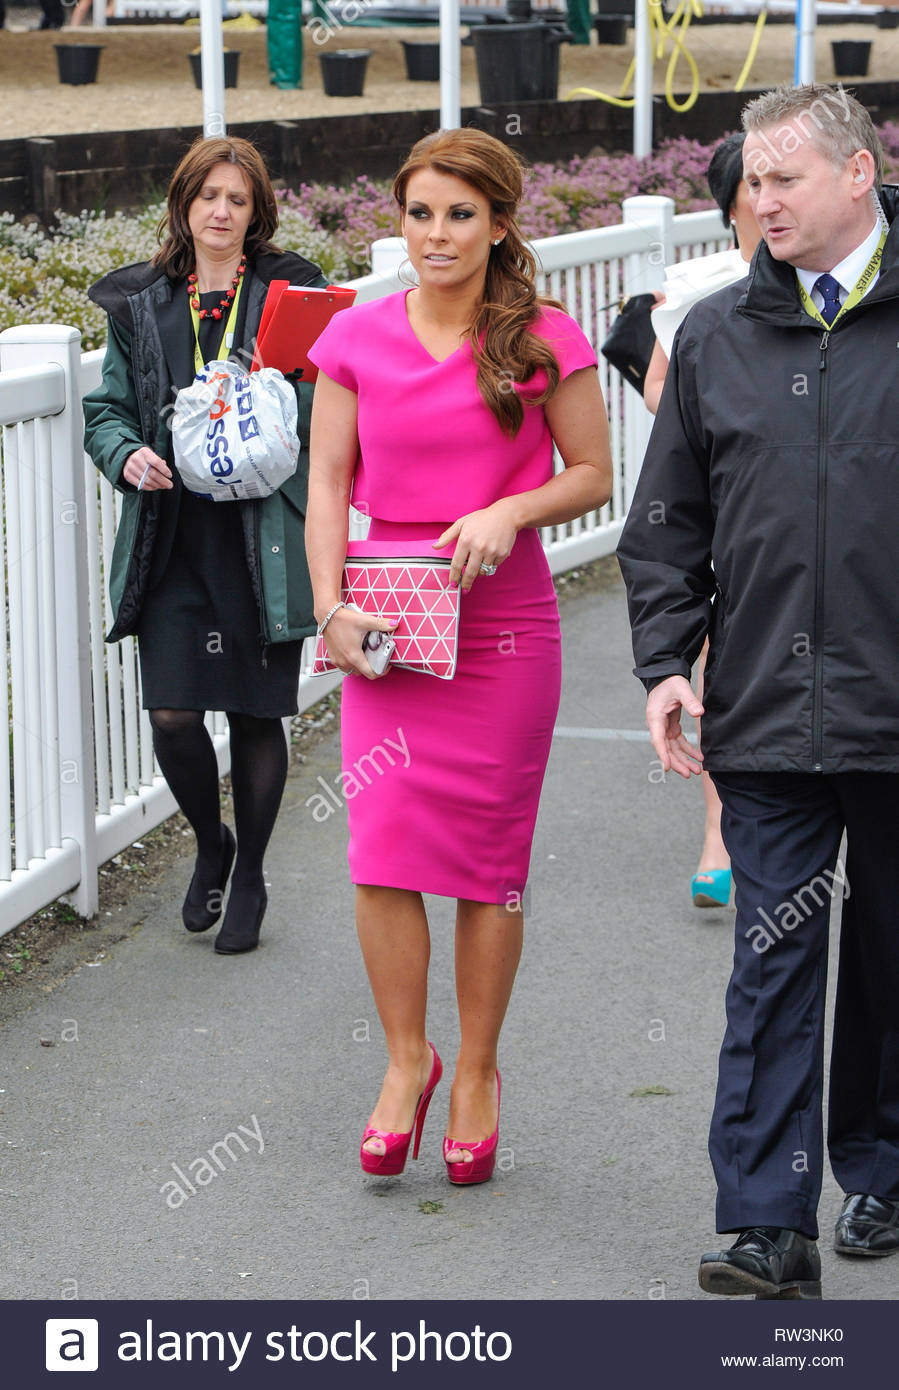 Pink Tv Online 3 Apr 2014 Liverpool Uk Coleen Rooney Looks Pretty In Pink As